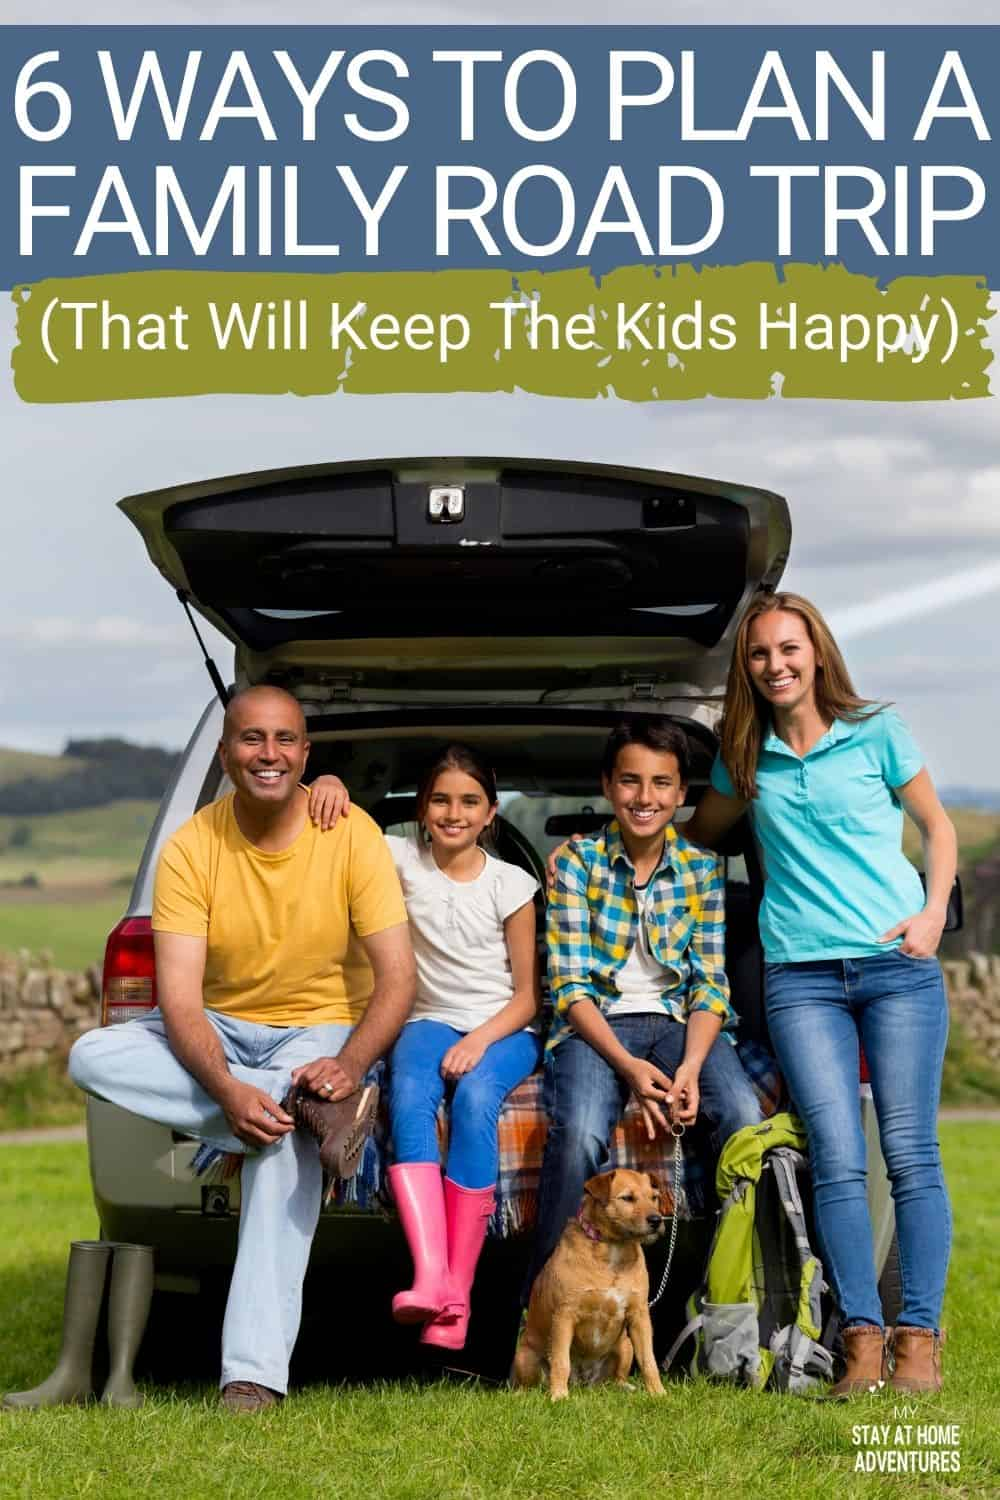 Planning a family road trip with kids? Learn six ways to plan the perfect family road trip that will keep everyone in your family happy! #familyroadtrip #roadtrips #tips #ideas via @mystayathome